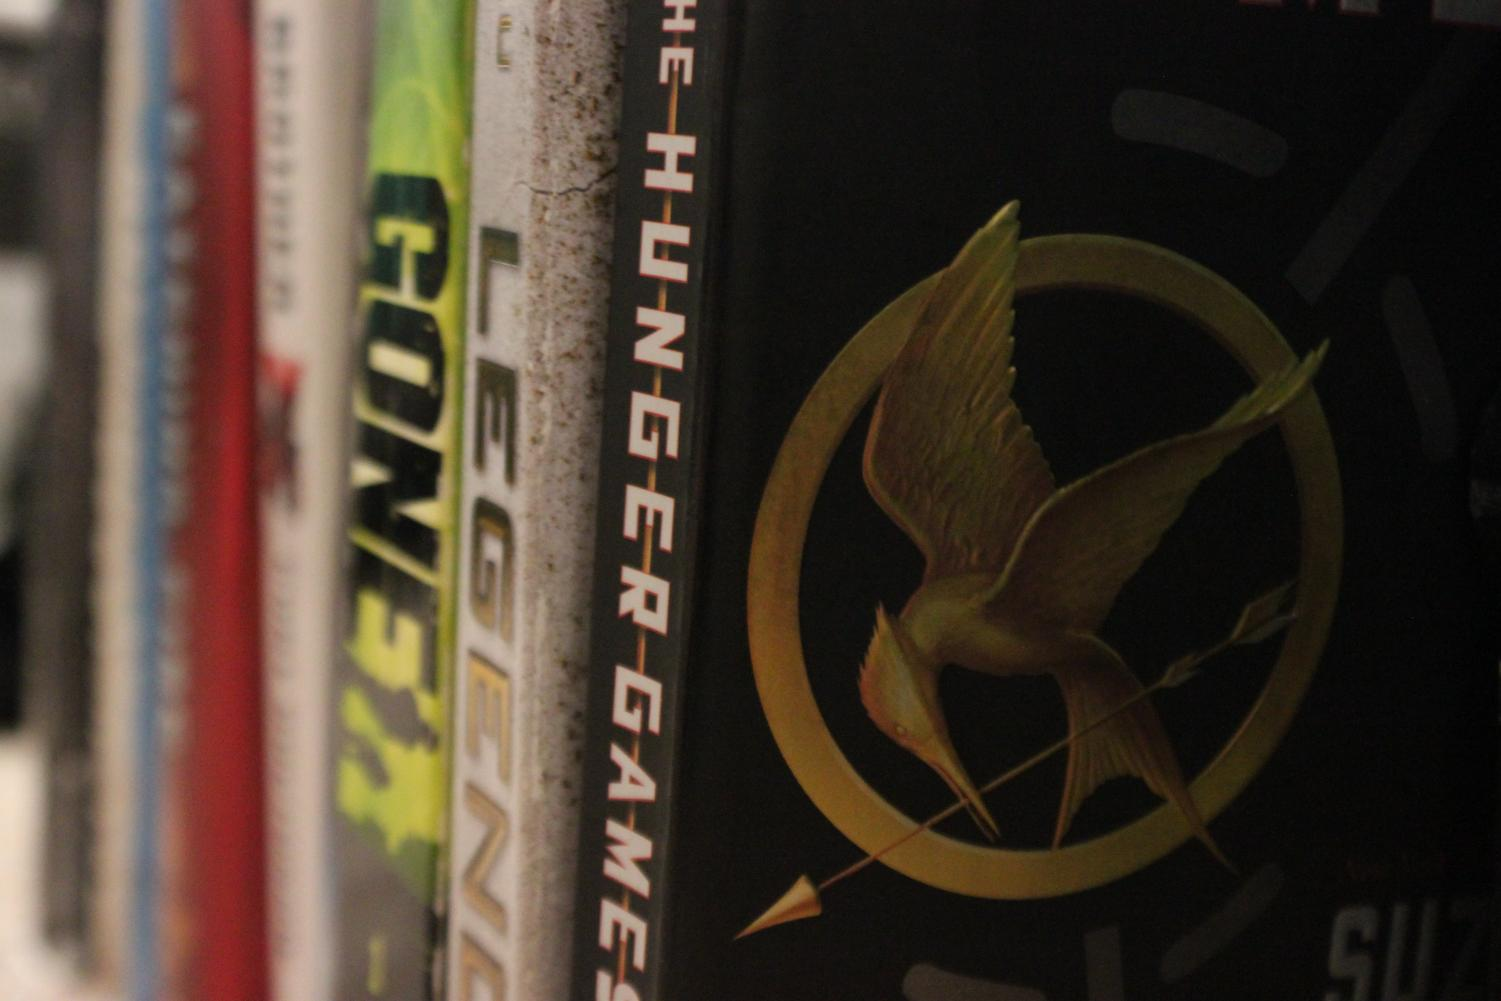 Dystopian novels have become incredibly popular amongst young adult readers.